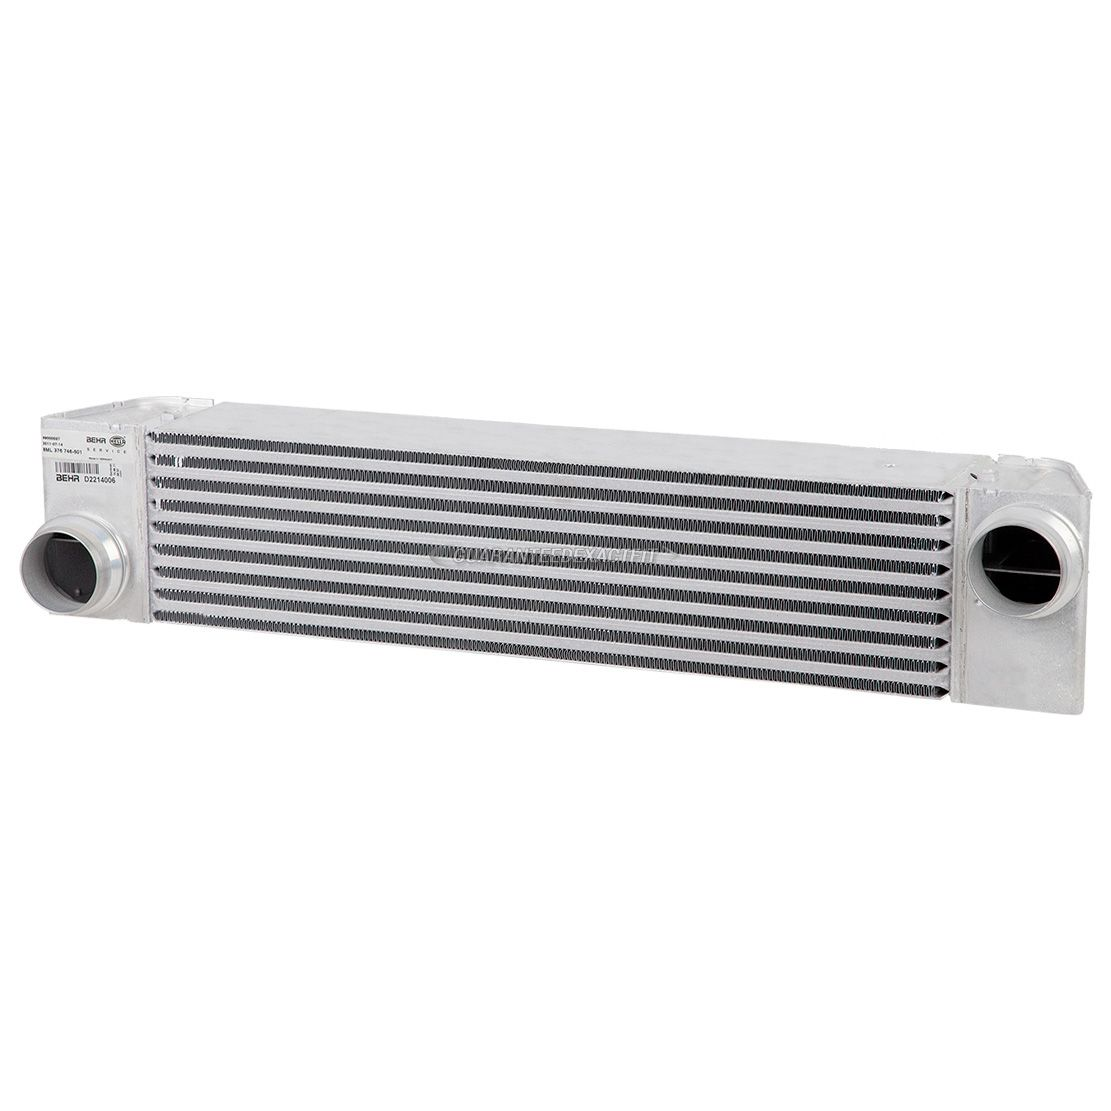 BMW 528 Intercooler